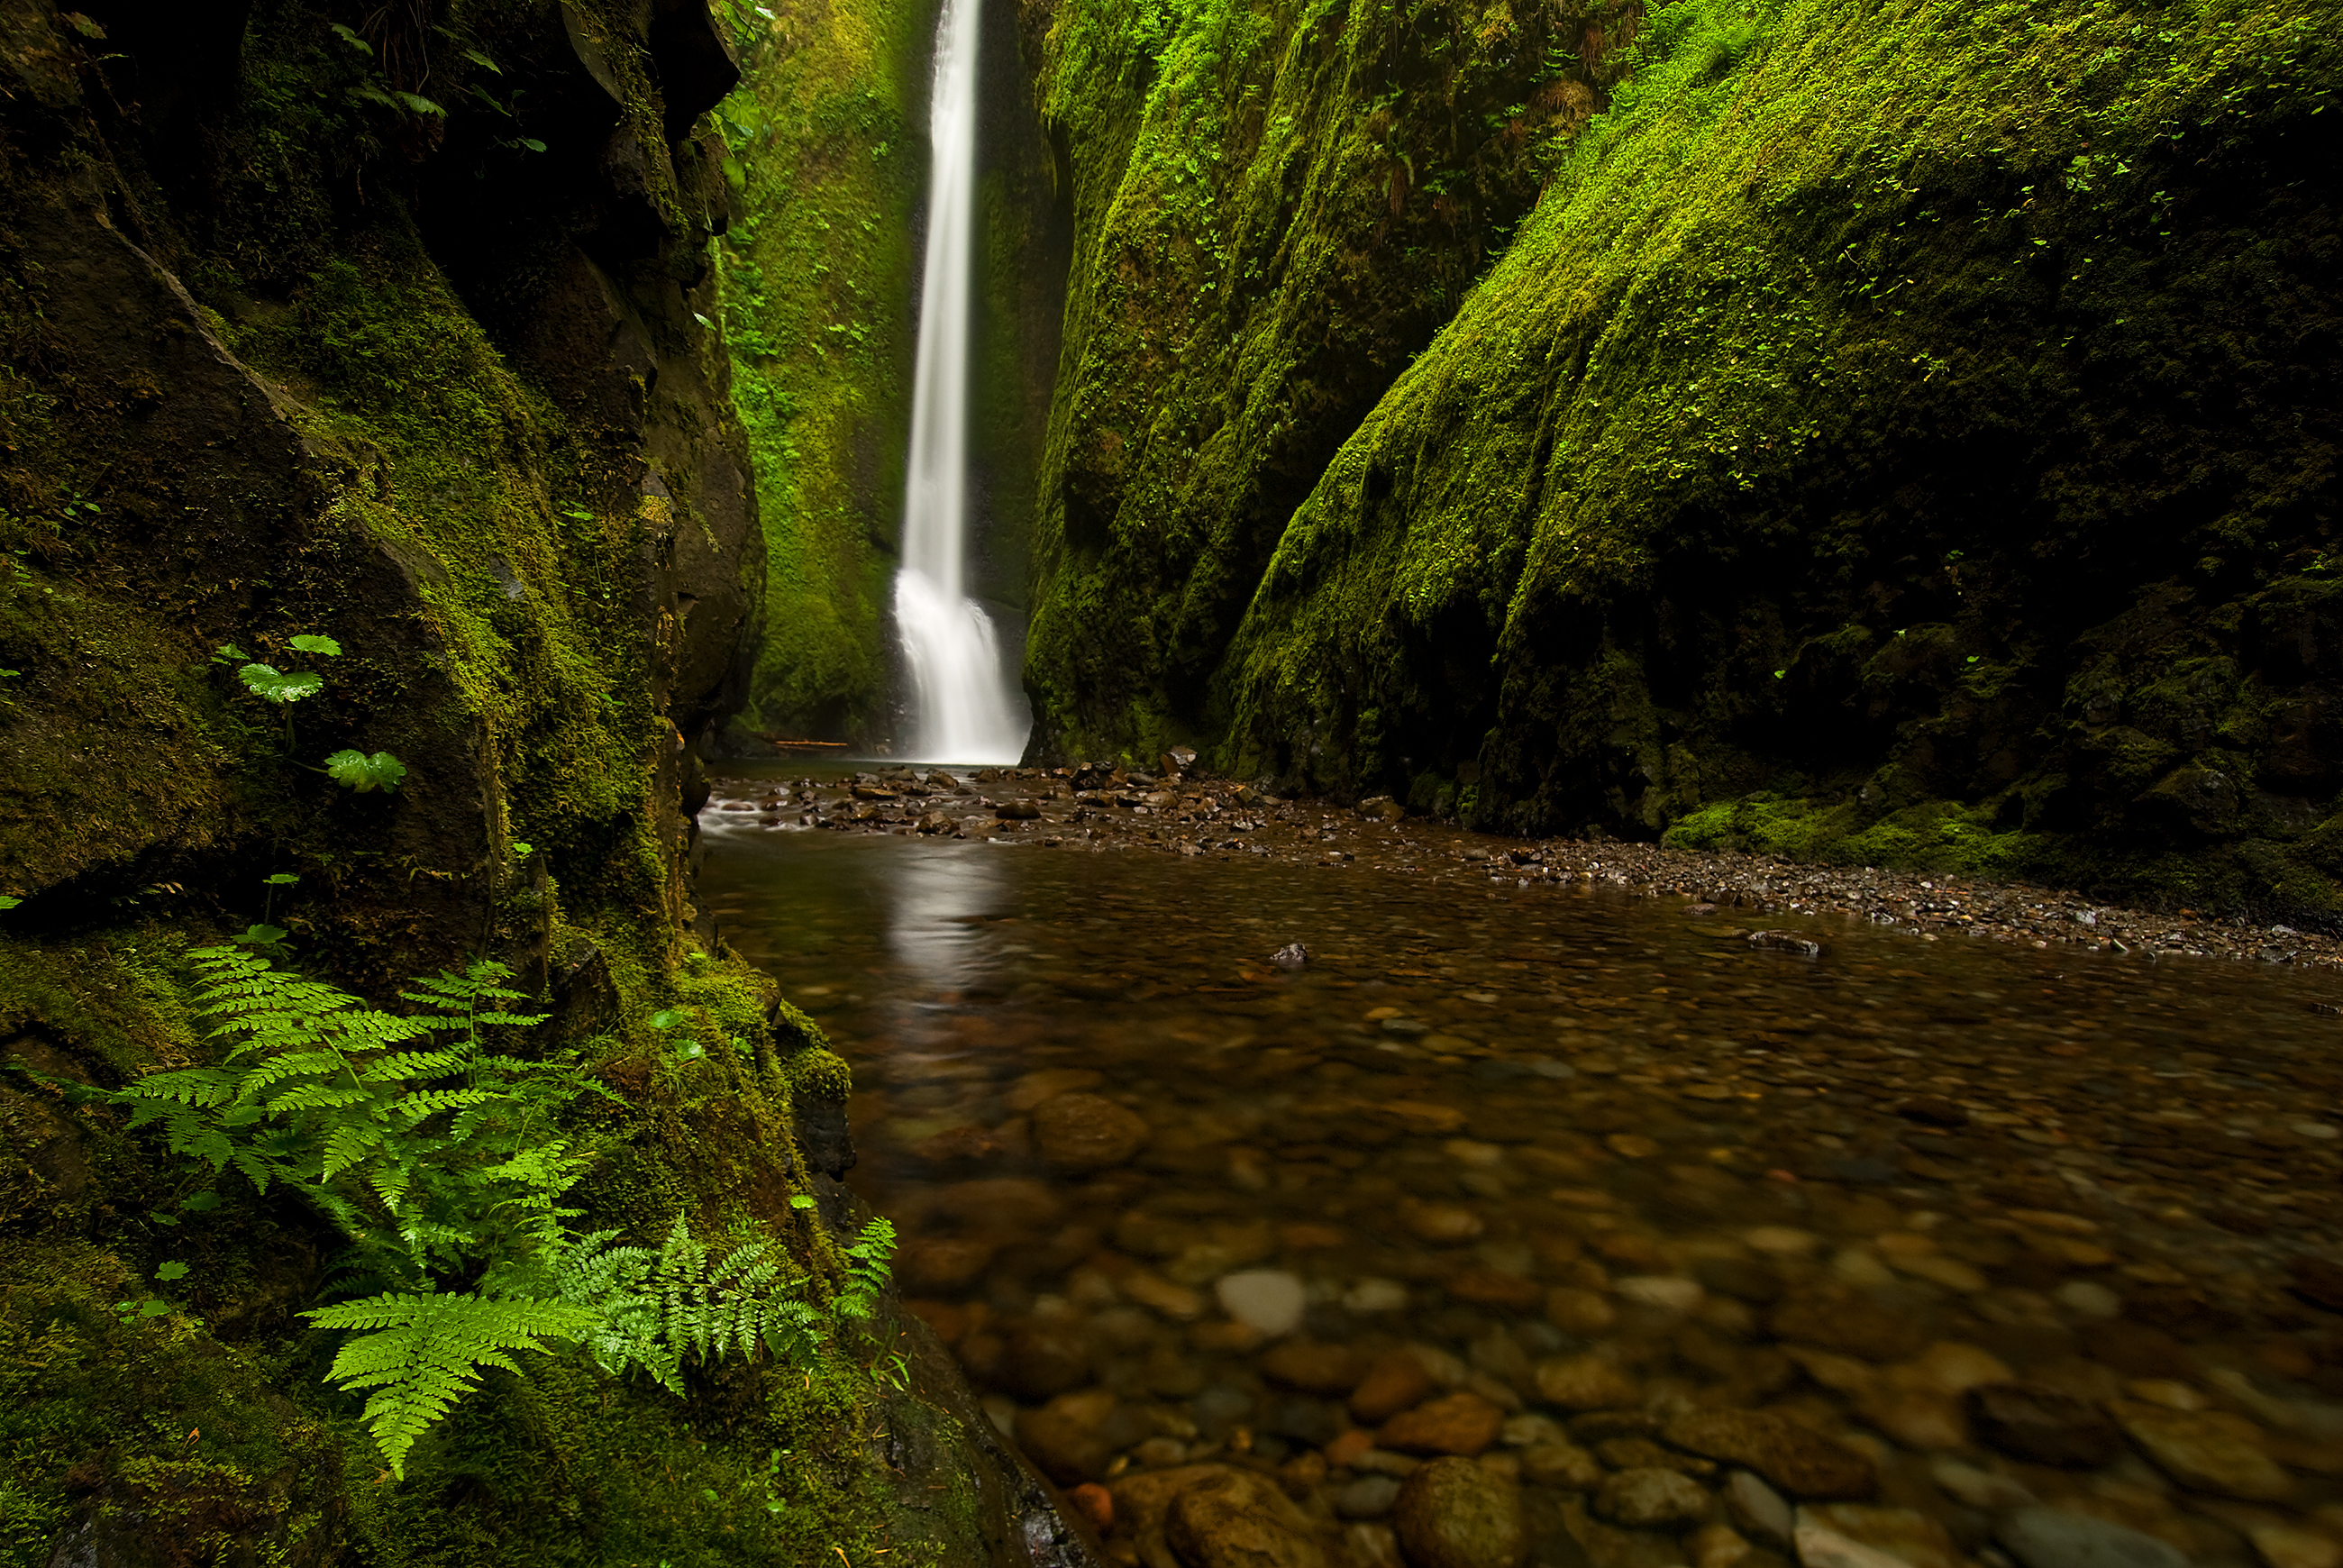 Oneonta Gorge to Lower Oneonta Falls